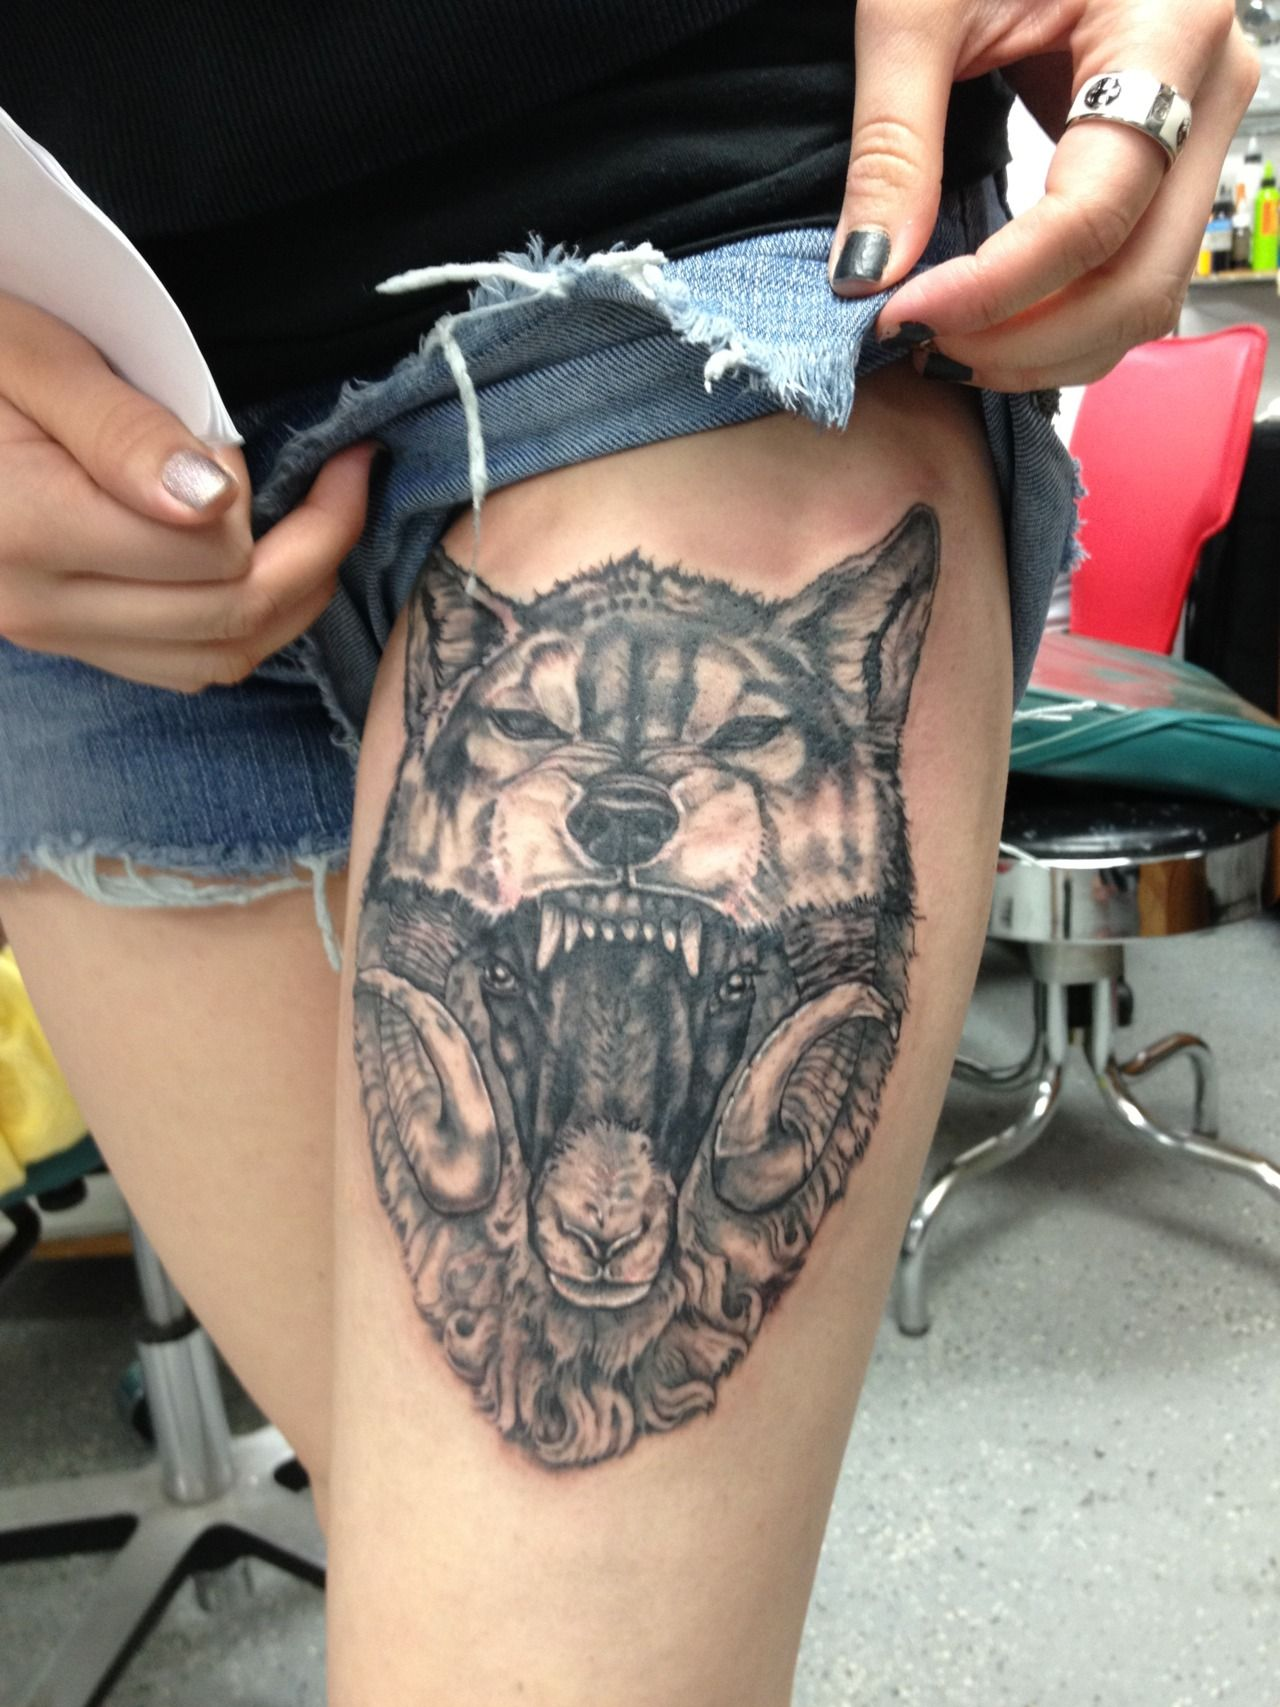 wolf in sheep's clothing | Tattoos | Pinterest: pinterest.com/pin/130534089169767401